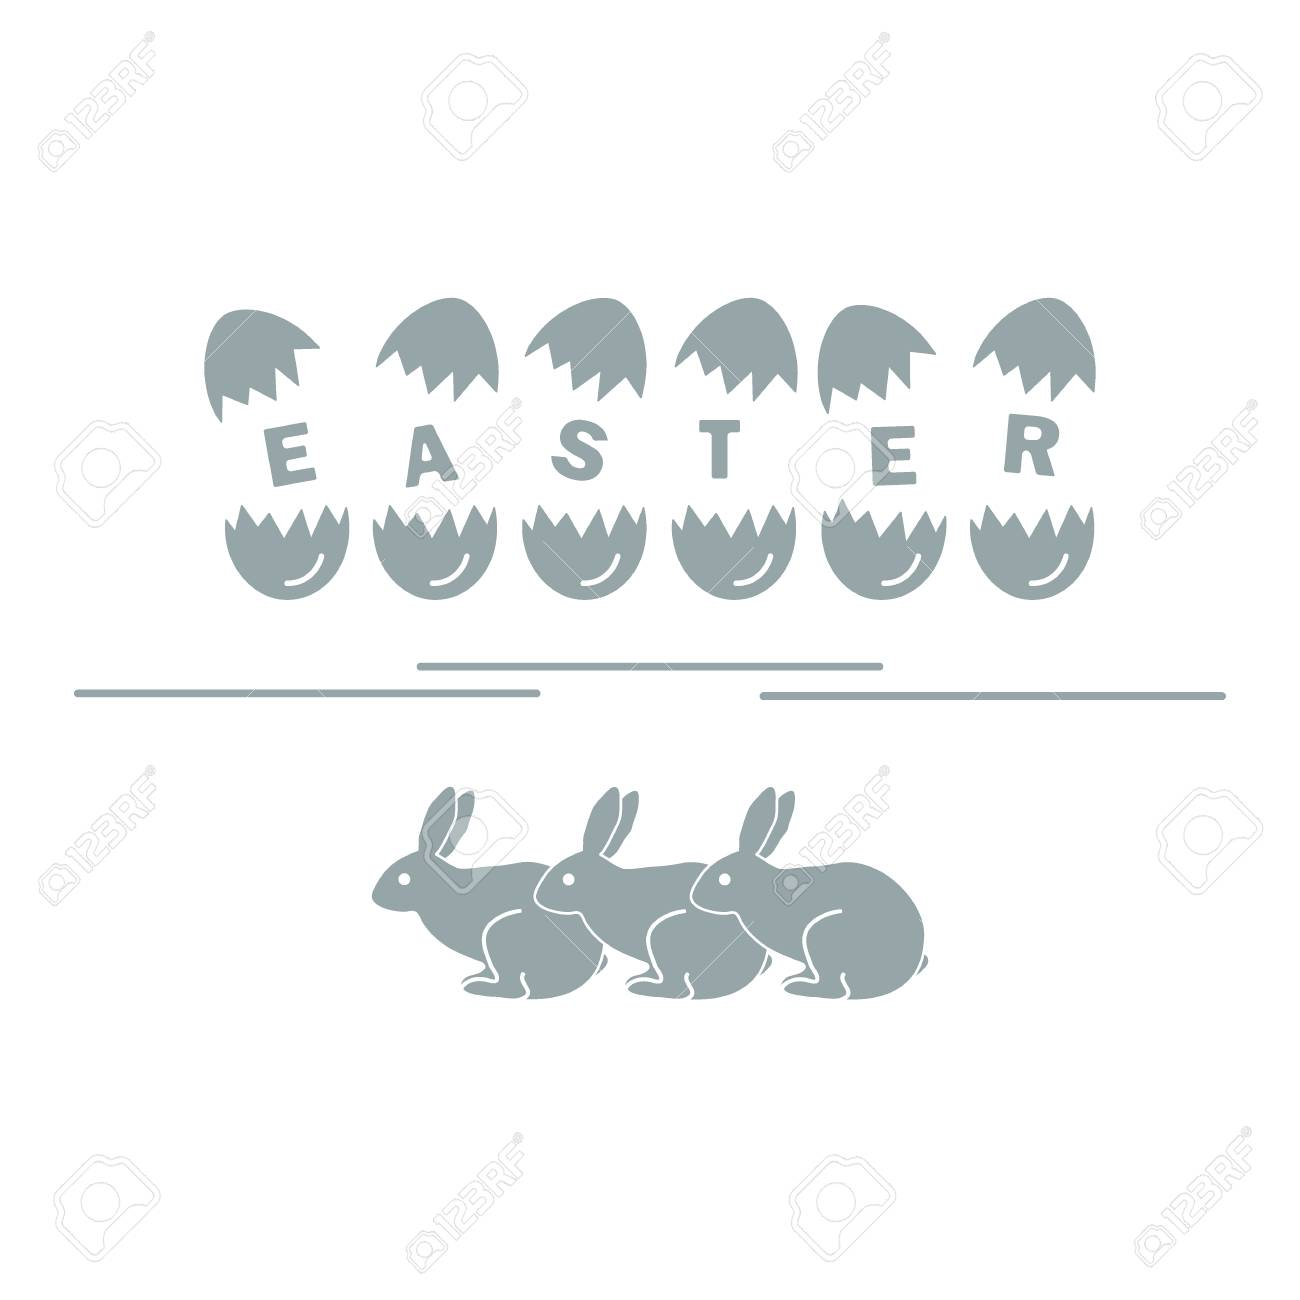 Cute Vector Illustration With Symbols For Easter Design For